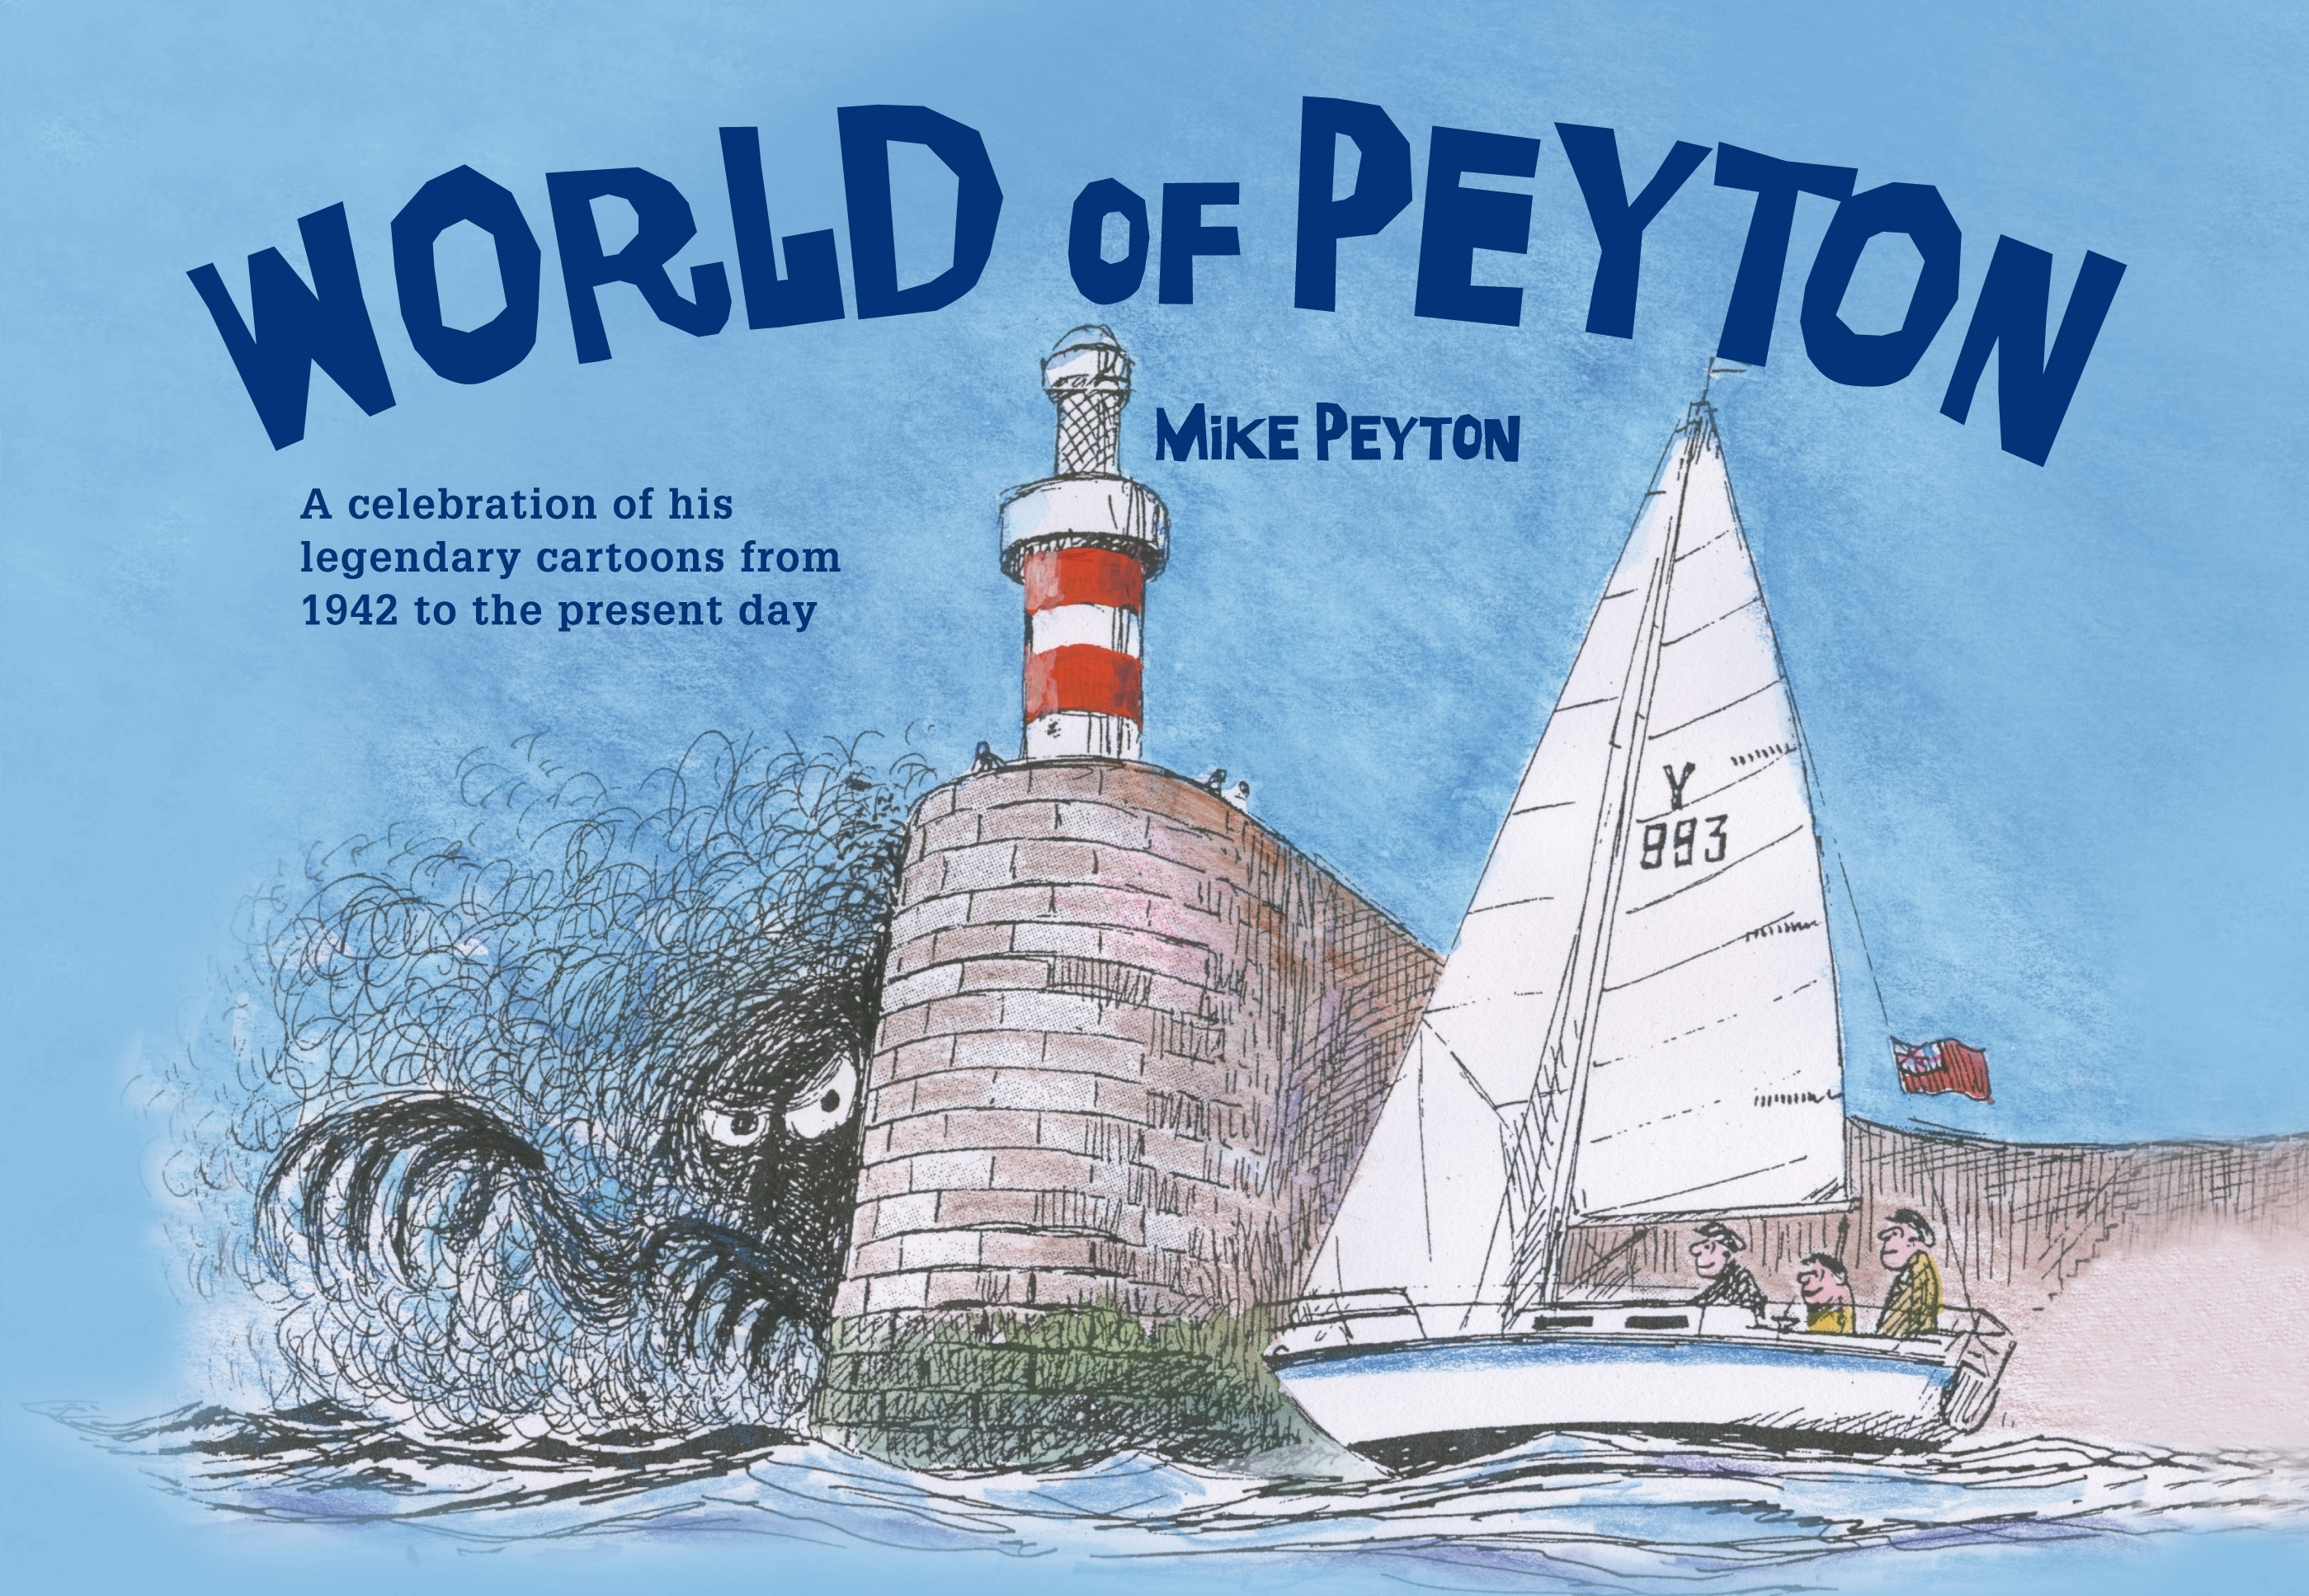 World of Peyton A Celebration of his Legendary Cartoons from 1942 to the Present Day